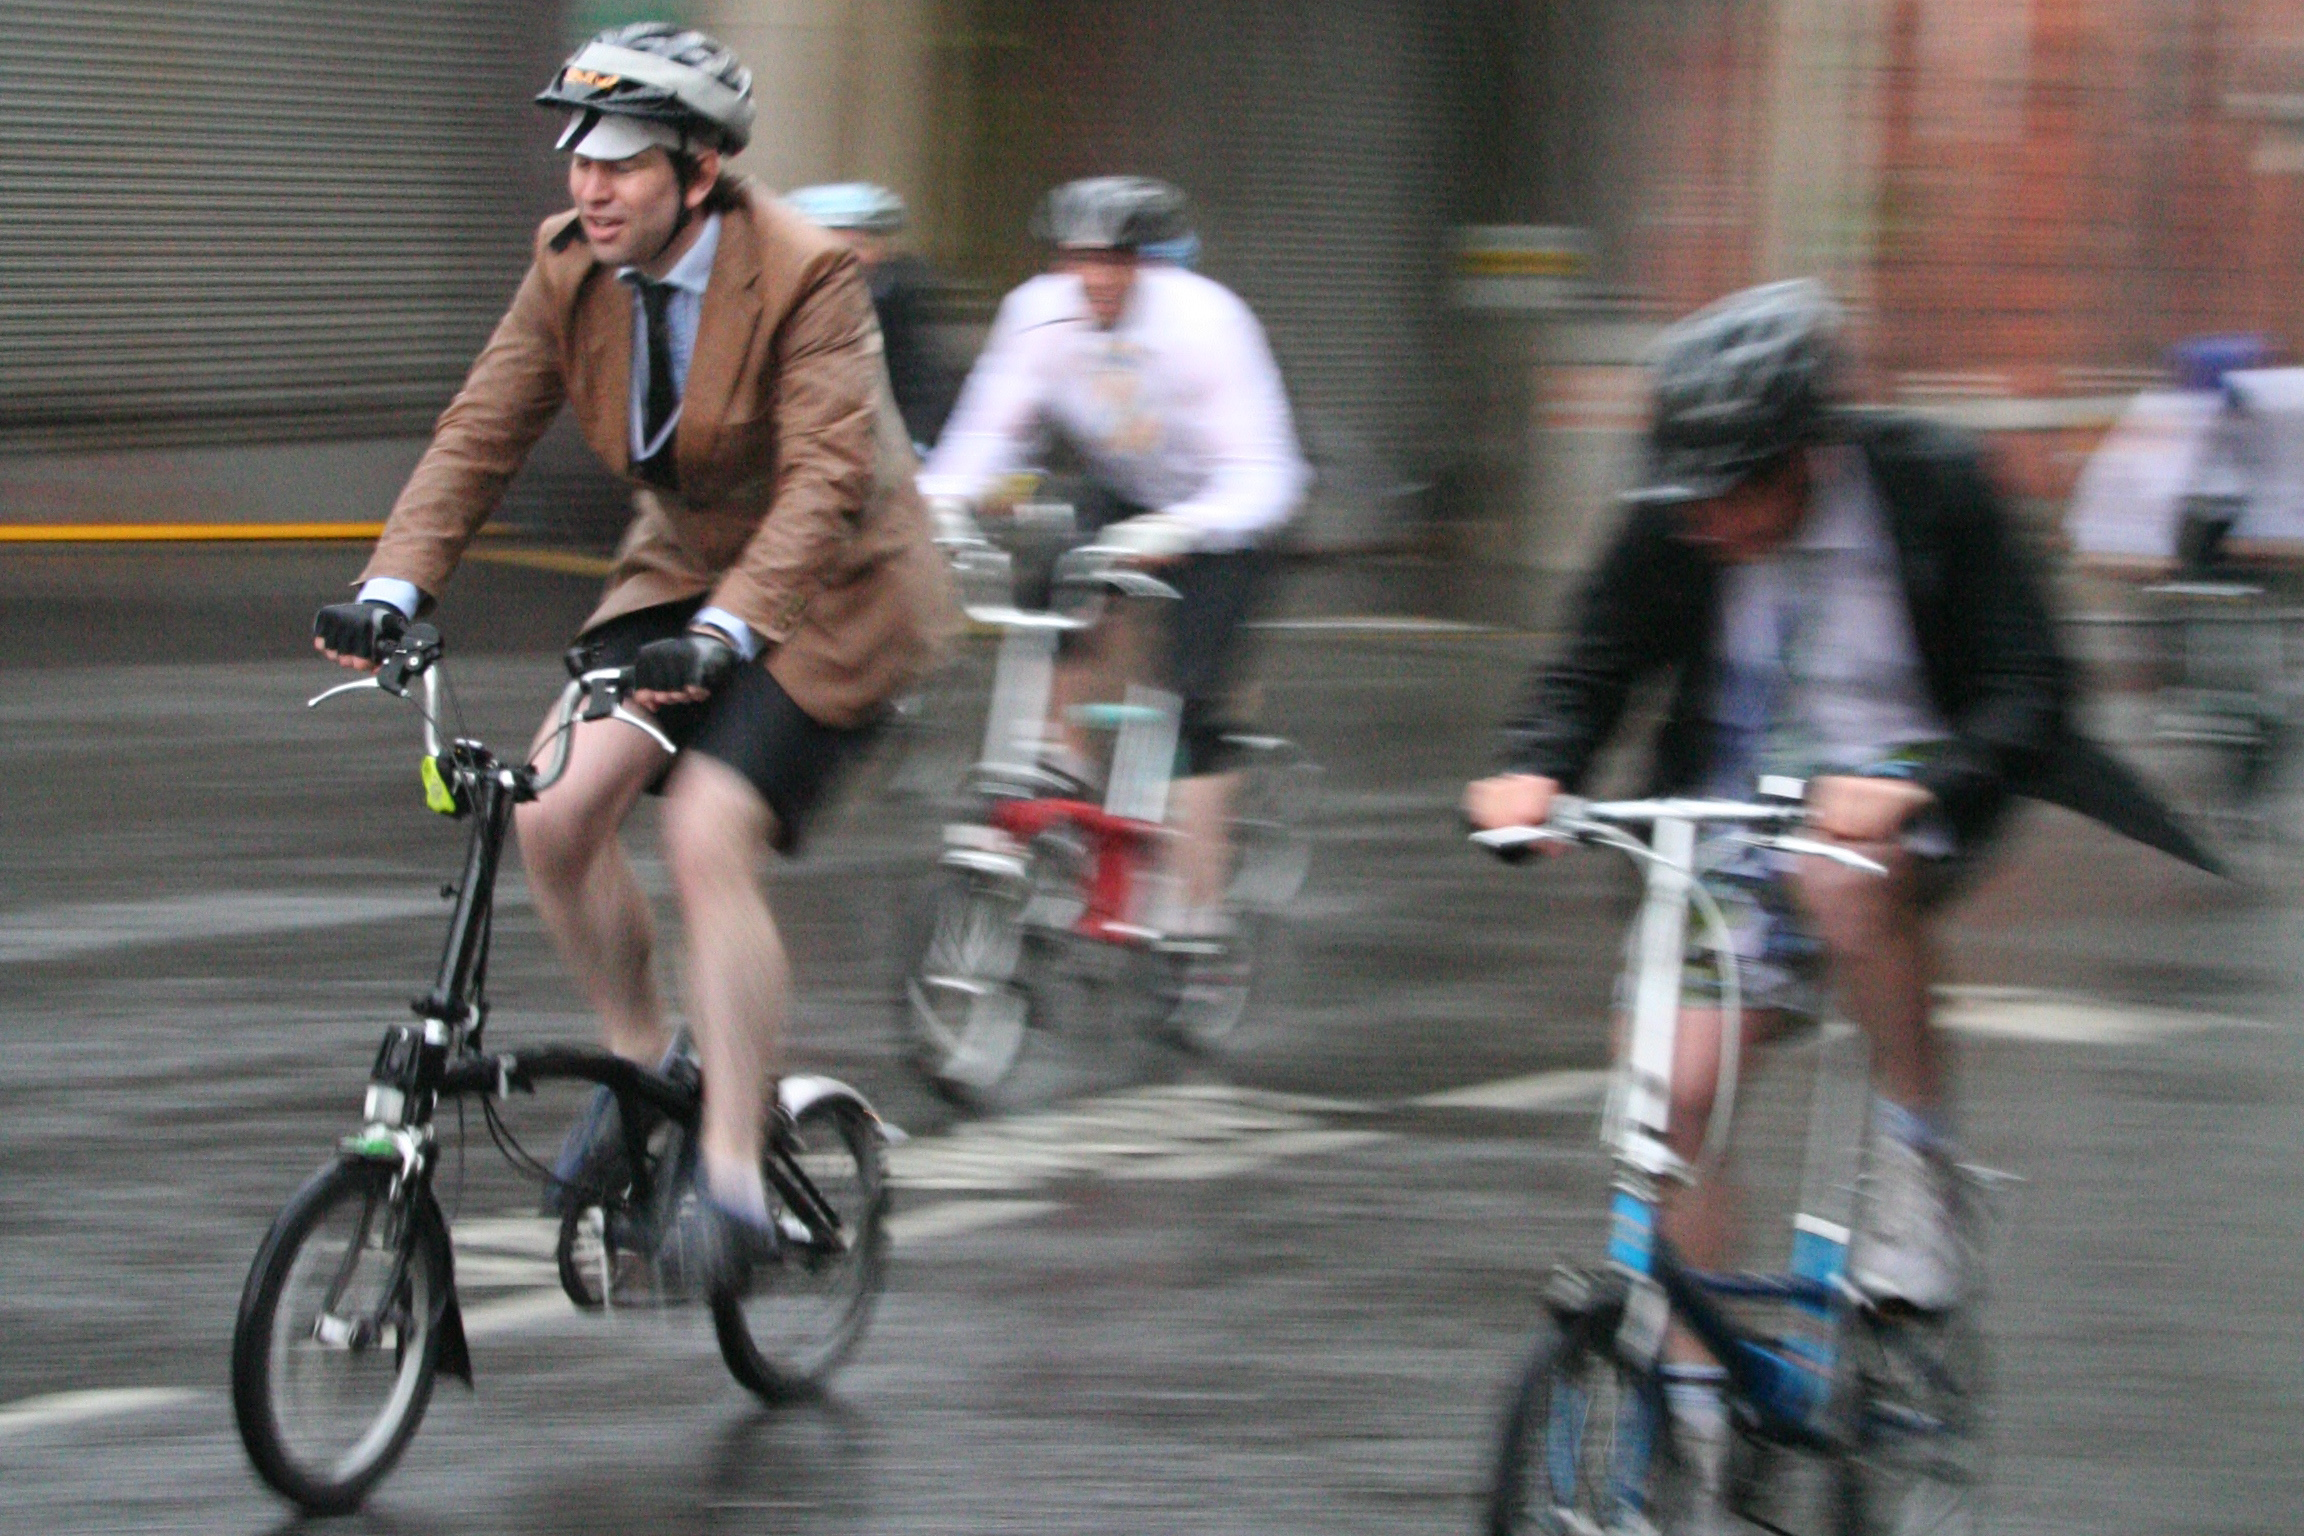 File:Folding-bicycles-smithfield-london-racers.jpg - Wikimedia Commons